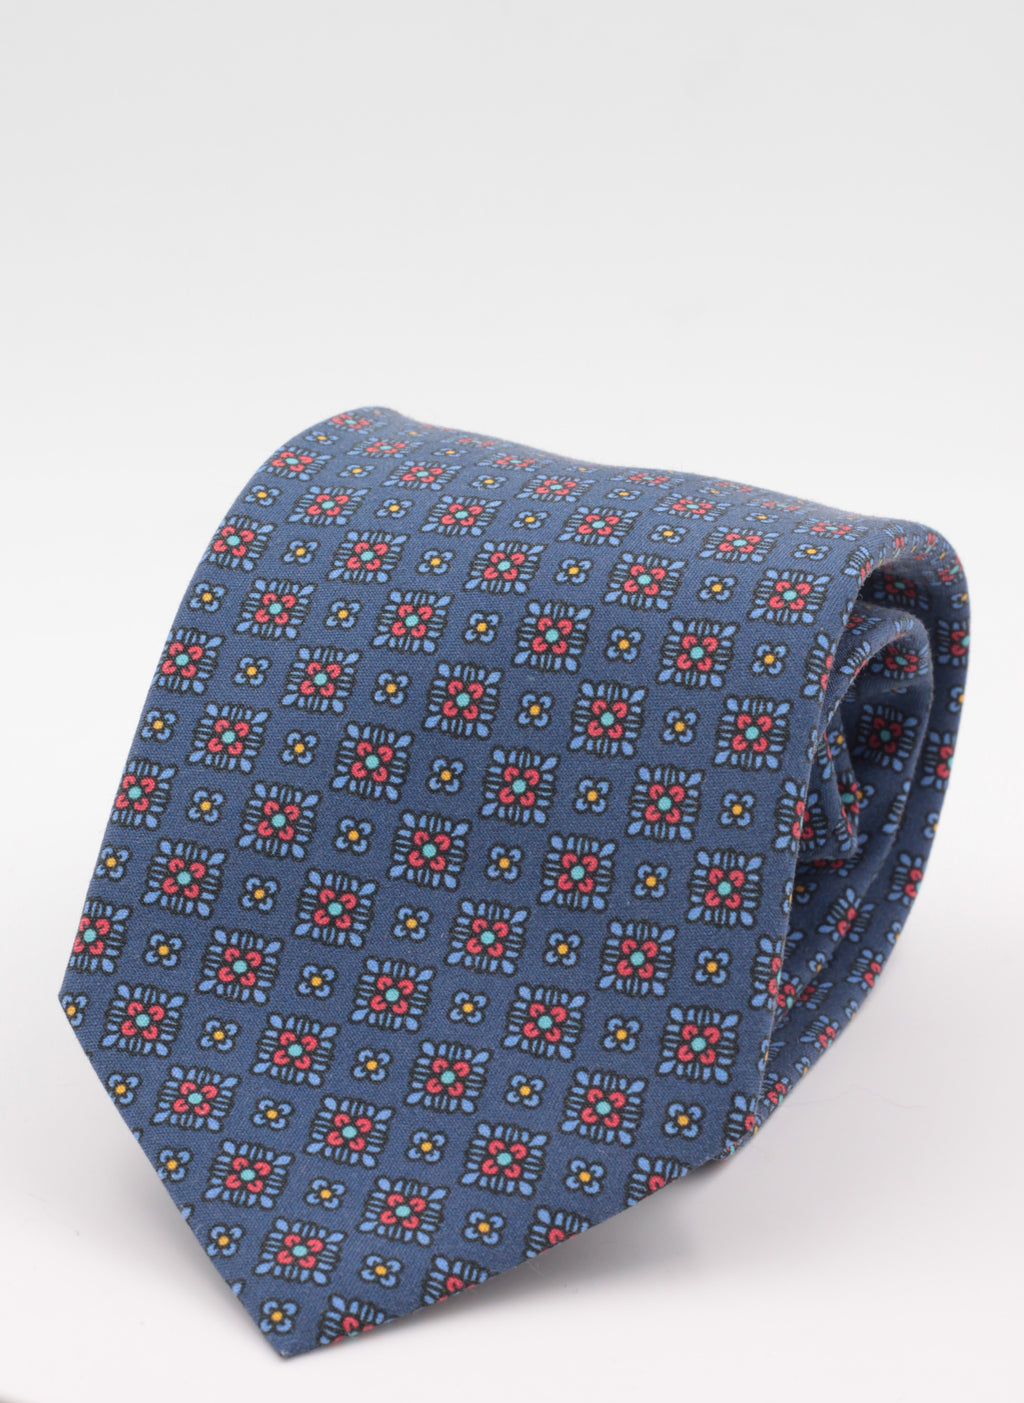 Cruciani & Bella - Printed Madder Silk  - Royal Blue, light blue, red and yellow print tie